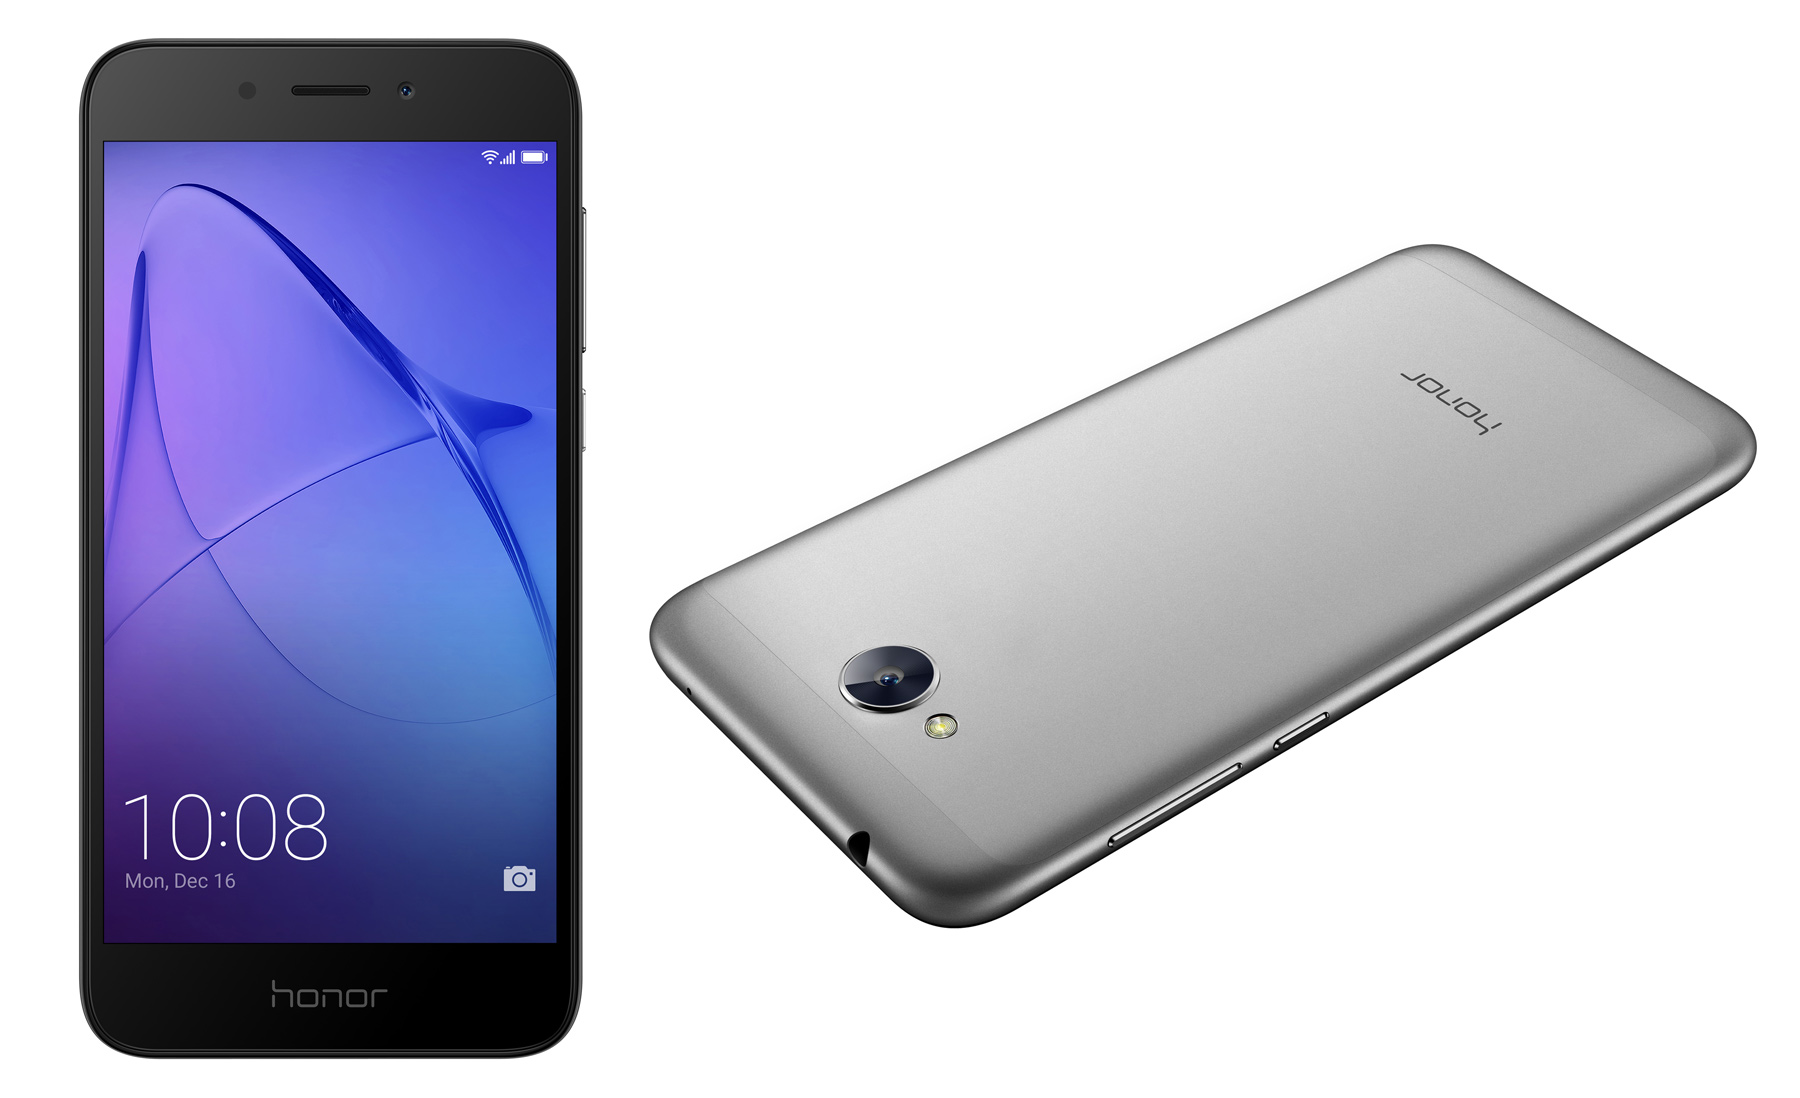 Honor returns to Moto G territory with the £150 6A